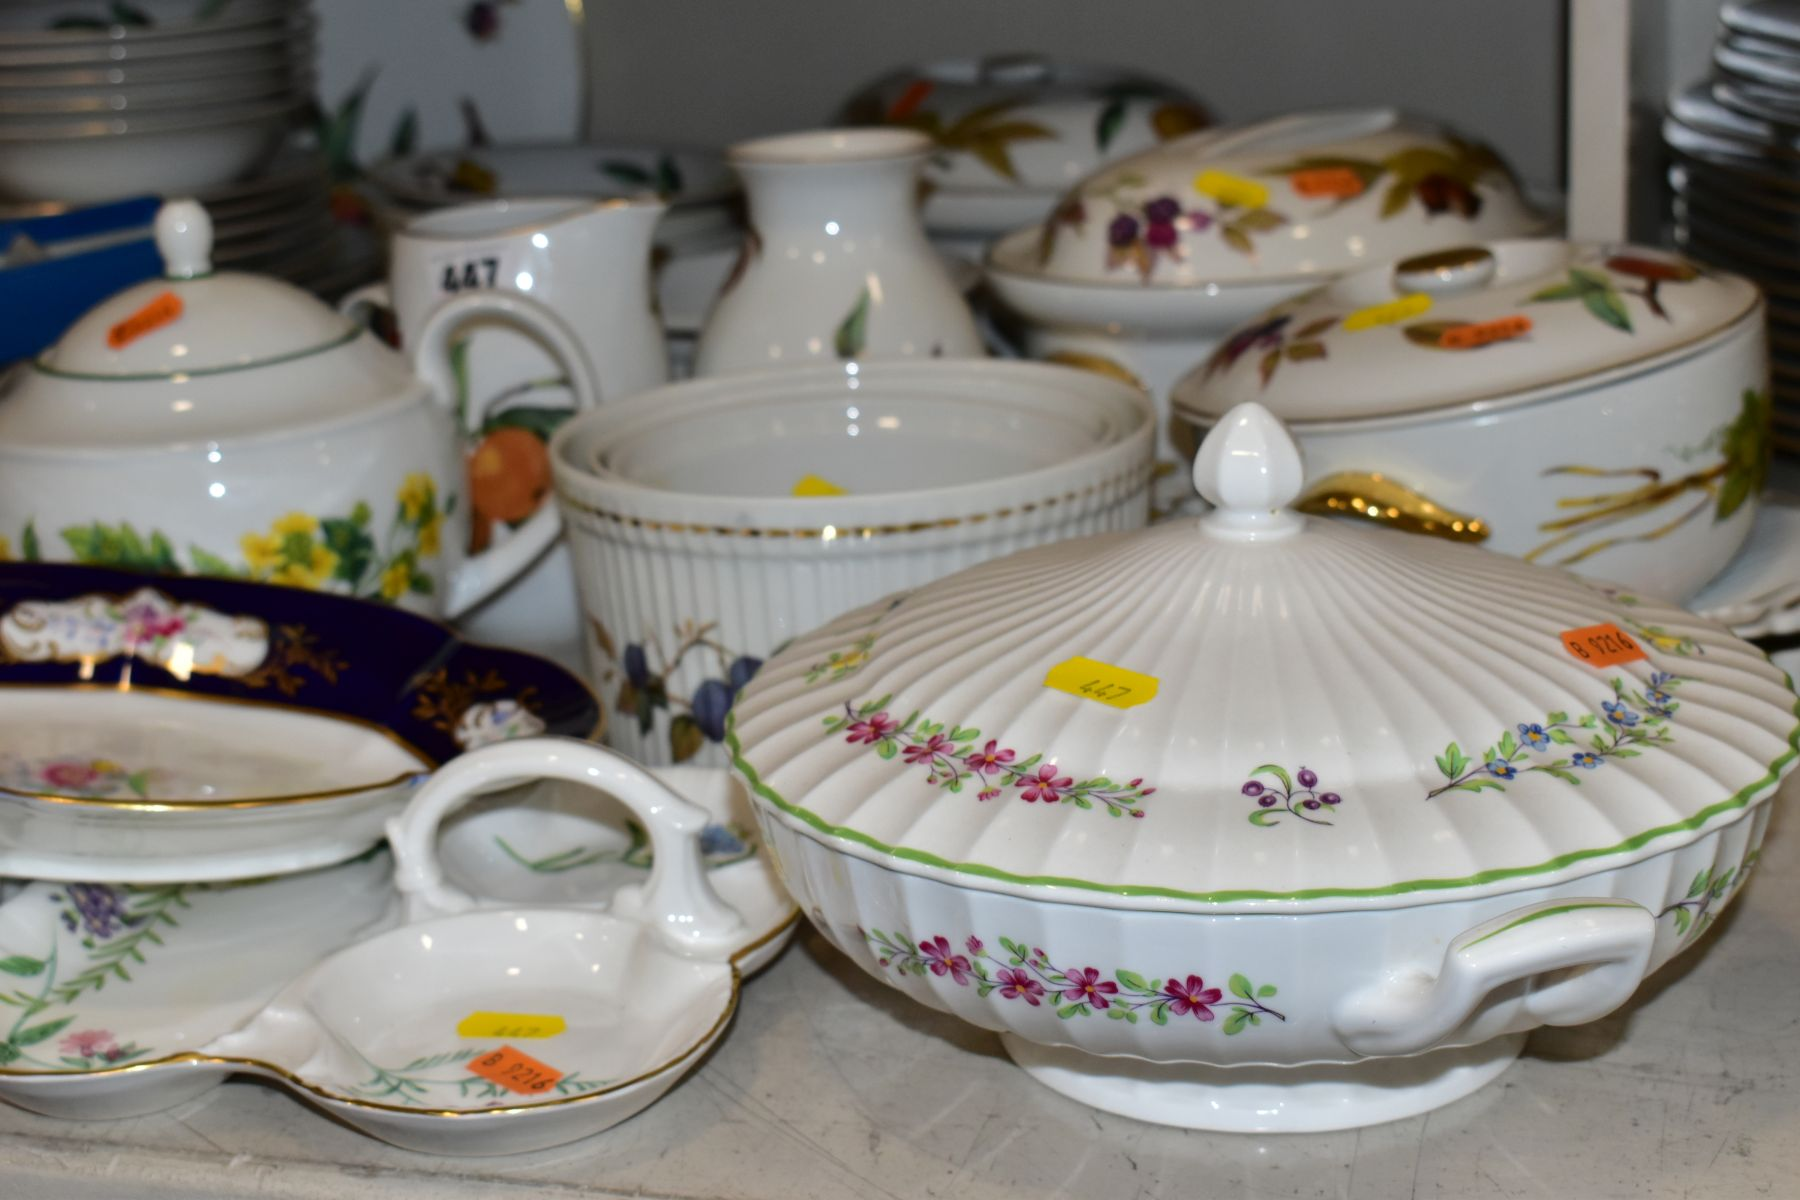 A QUATITY OF ROYAL WORCESTER 'EVESHAM' TABLEWARES, to include tureens, souffle dishes, meat - Image 9 of 9